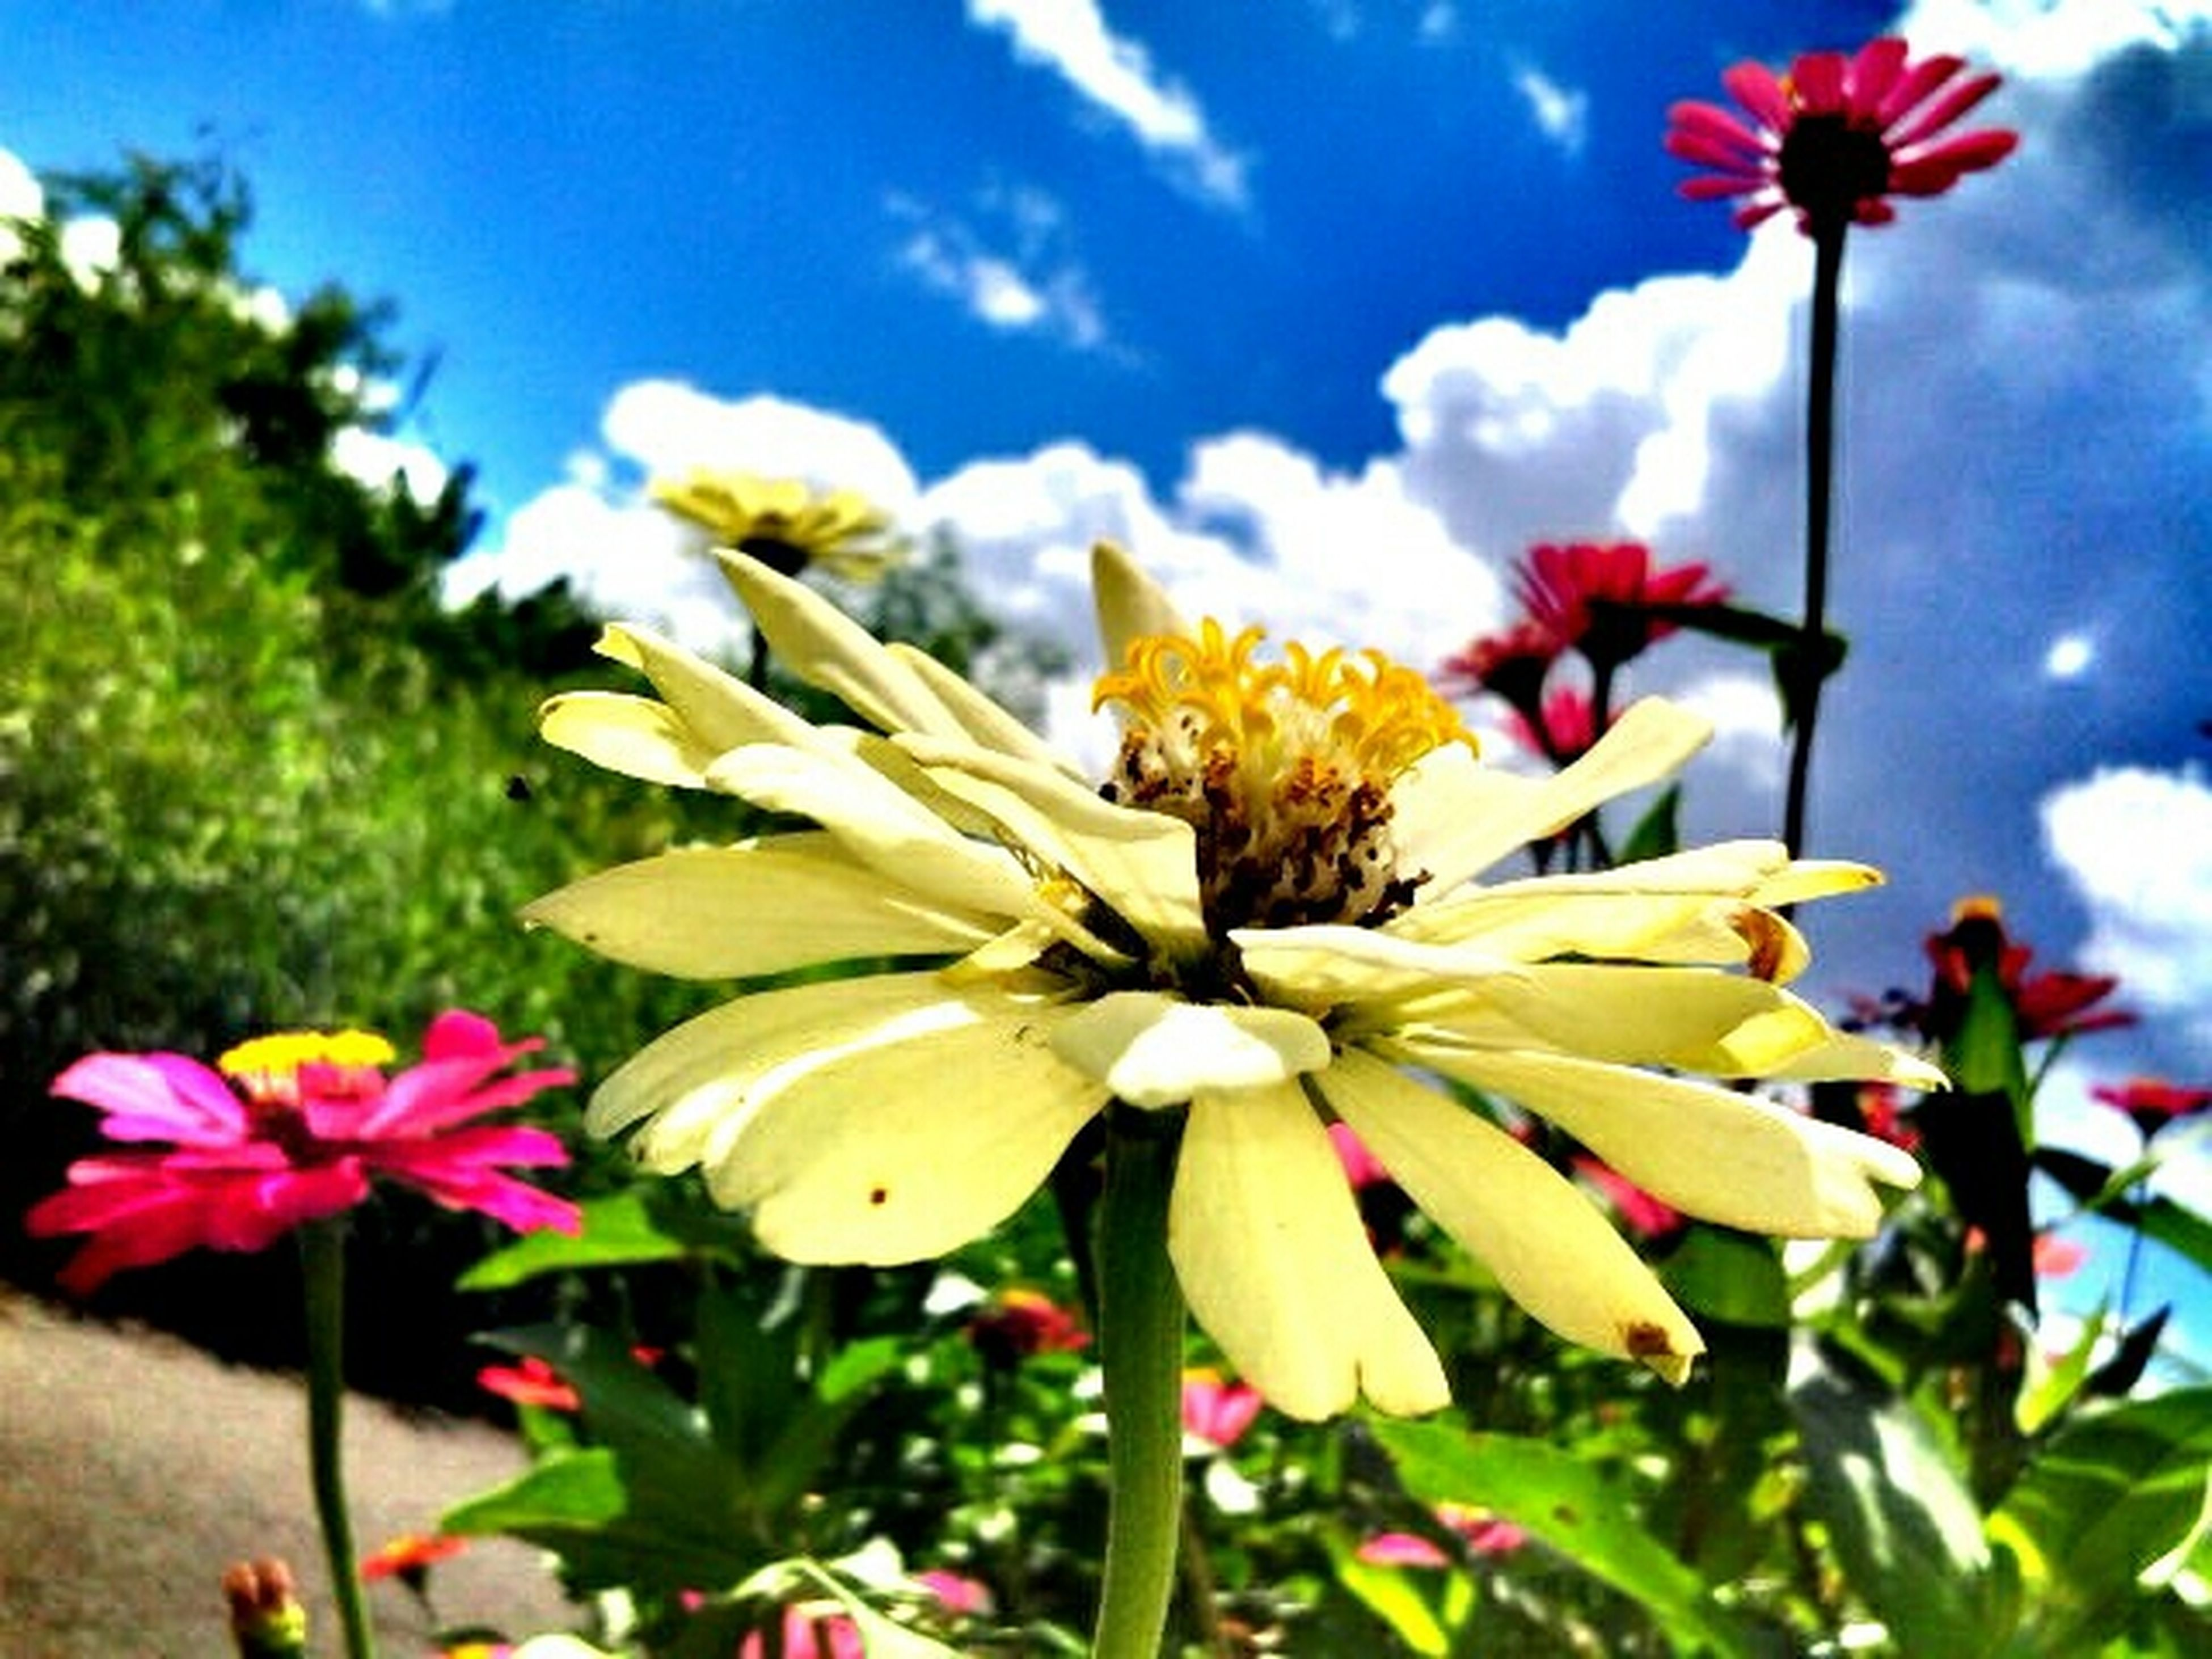 flower, freshness, petal, fragility, flower head, growth, beauty in nature, blooming, nature, close-up, focus on foreground, sky, pollen, in bloom, stem, blossom, plant, stamen, low angle view, day